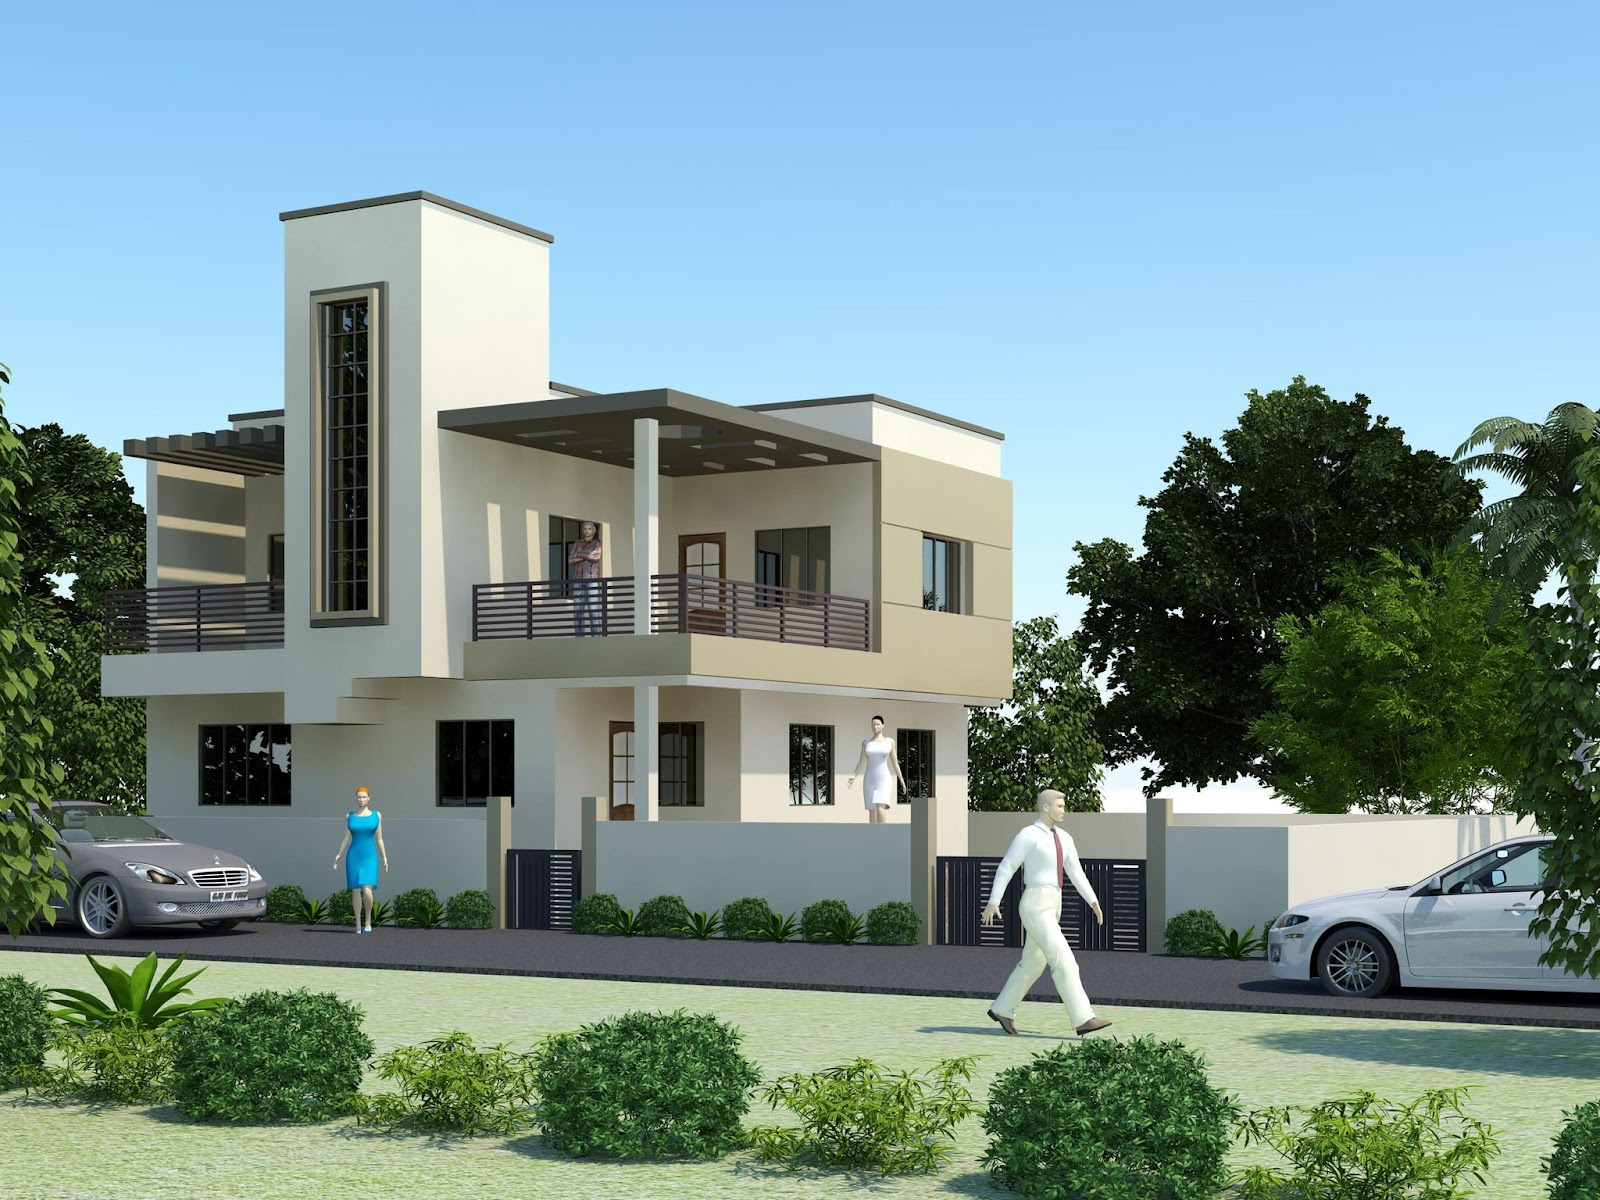 New home designs latest modern homes exterior designs front views pictures Home outside design